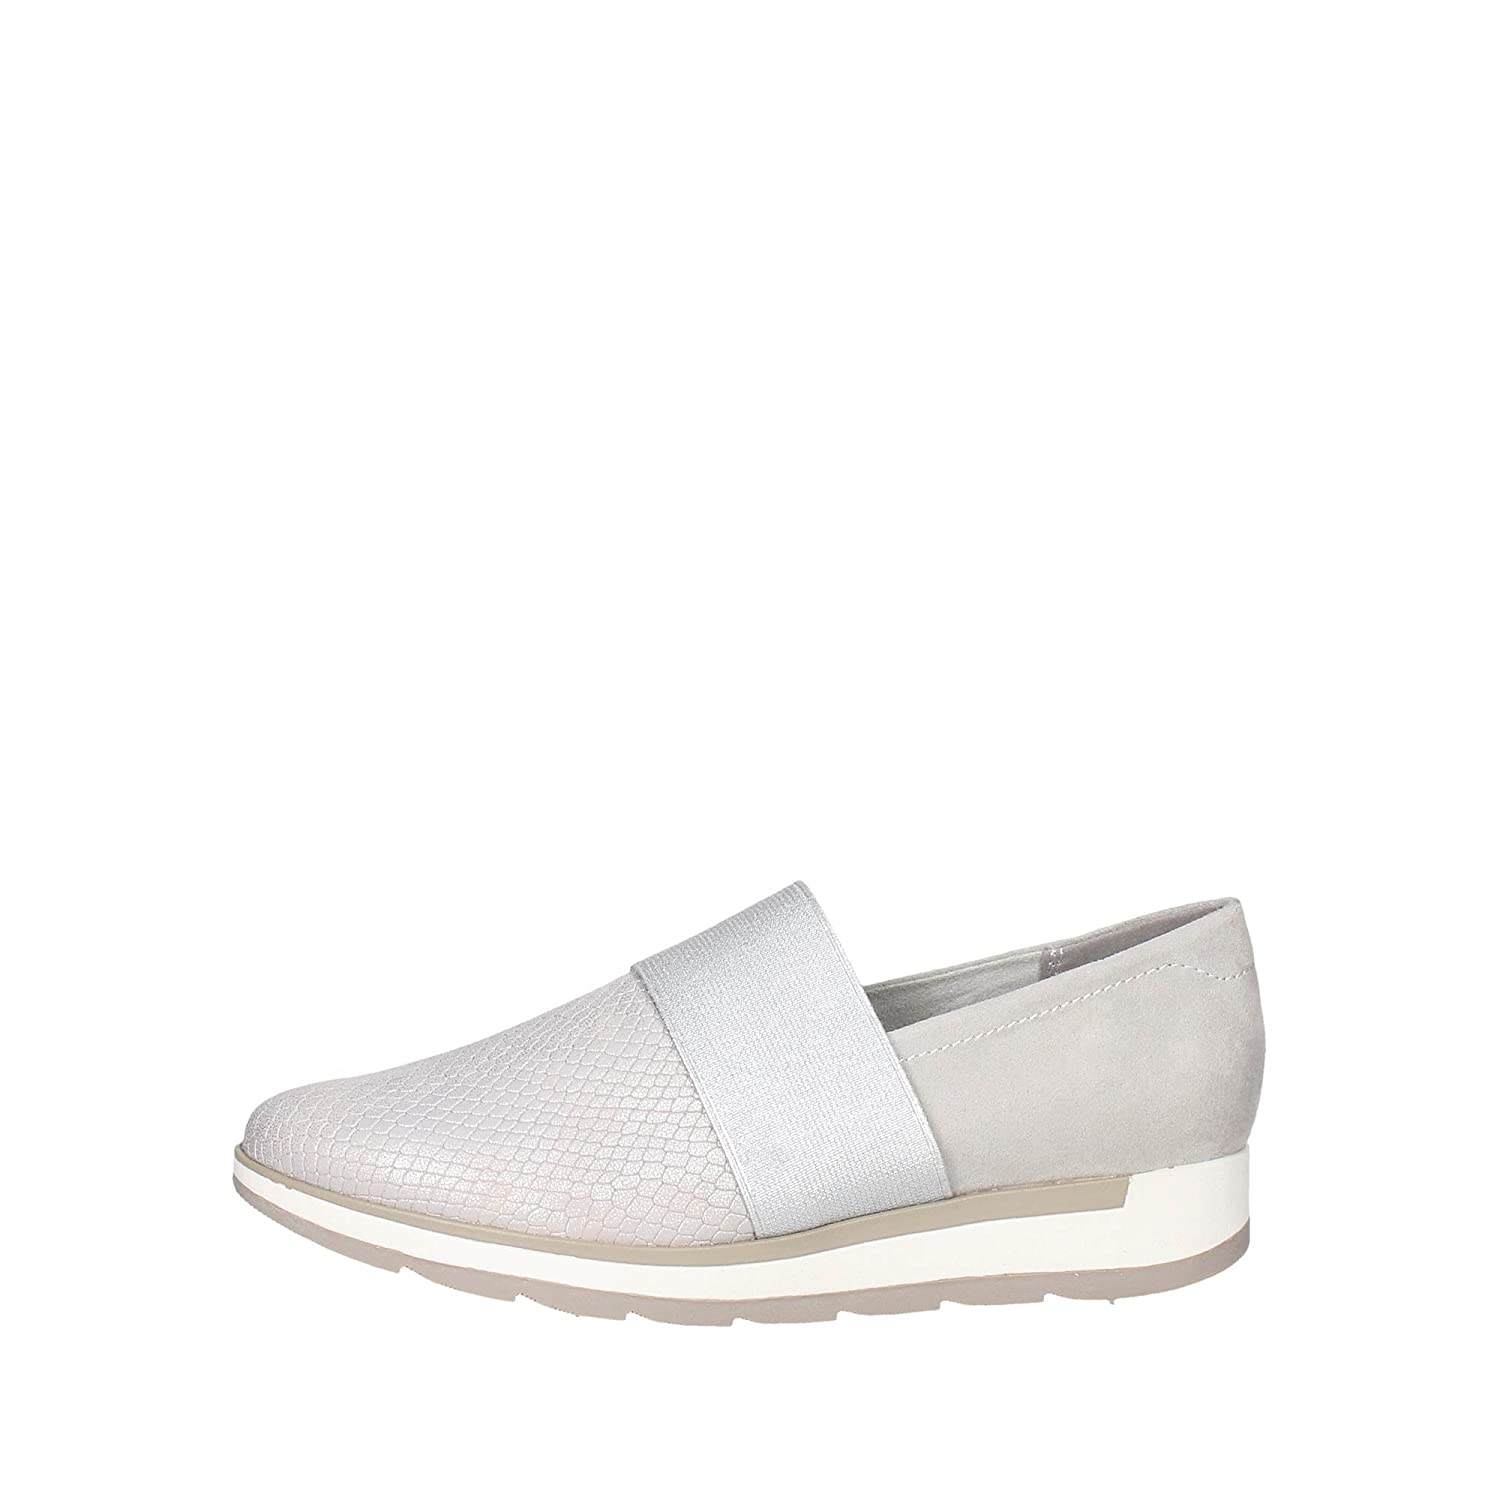 Marco Tozzi 24713 Slip-on Chaussures Femme Argent Argent - Chaussures Baskets basses Femme